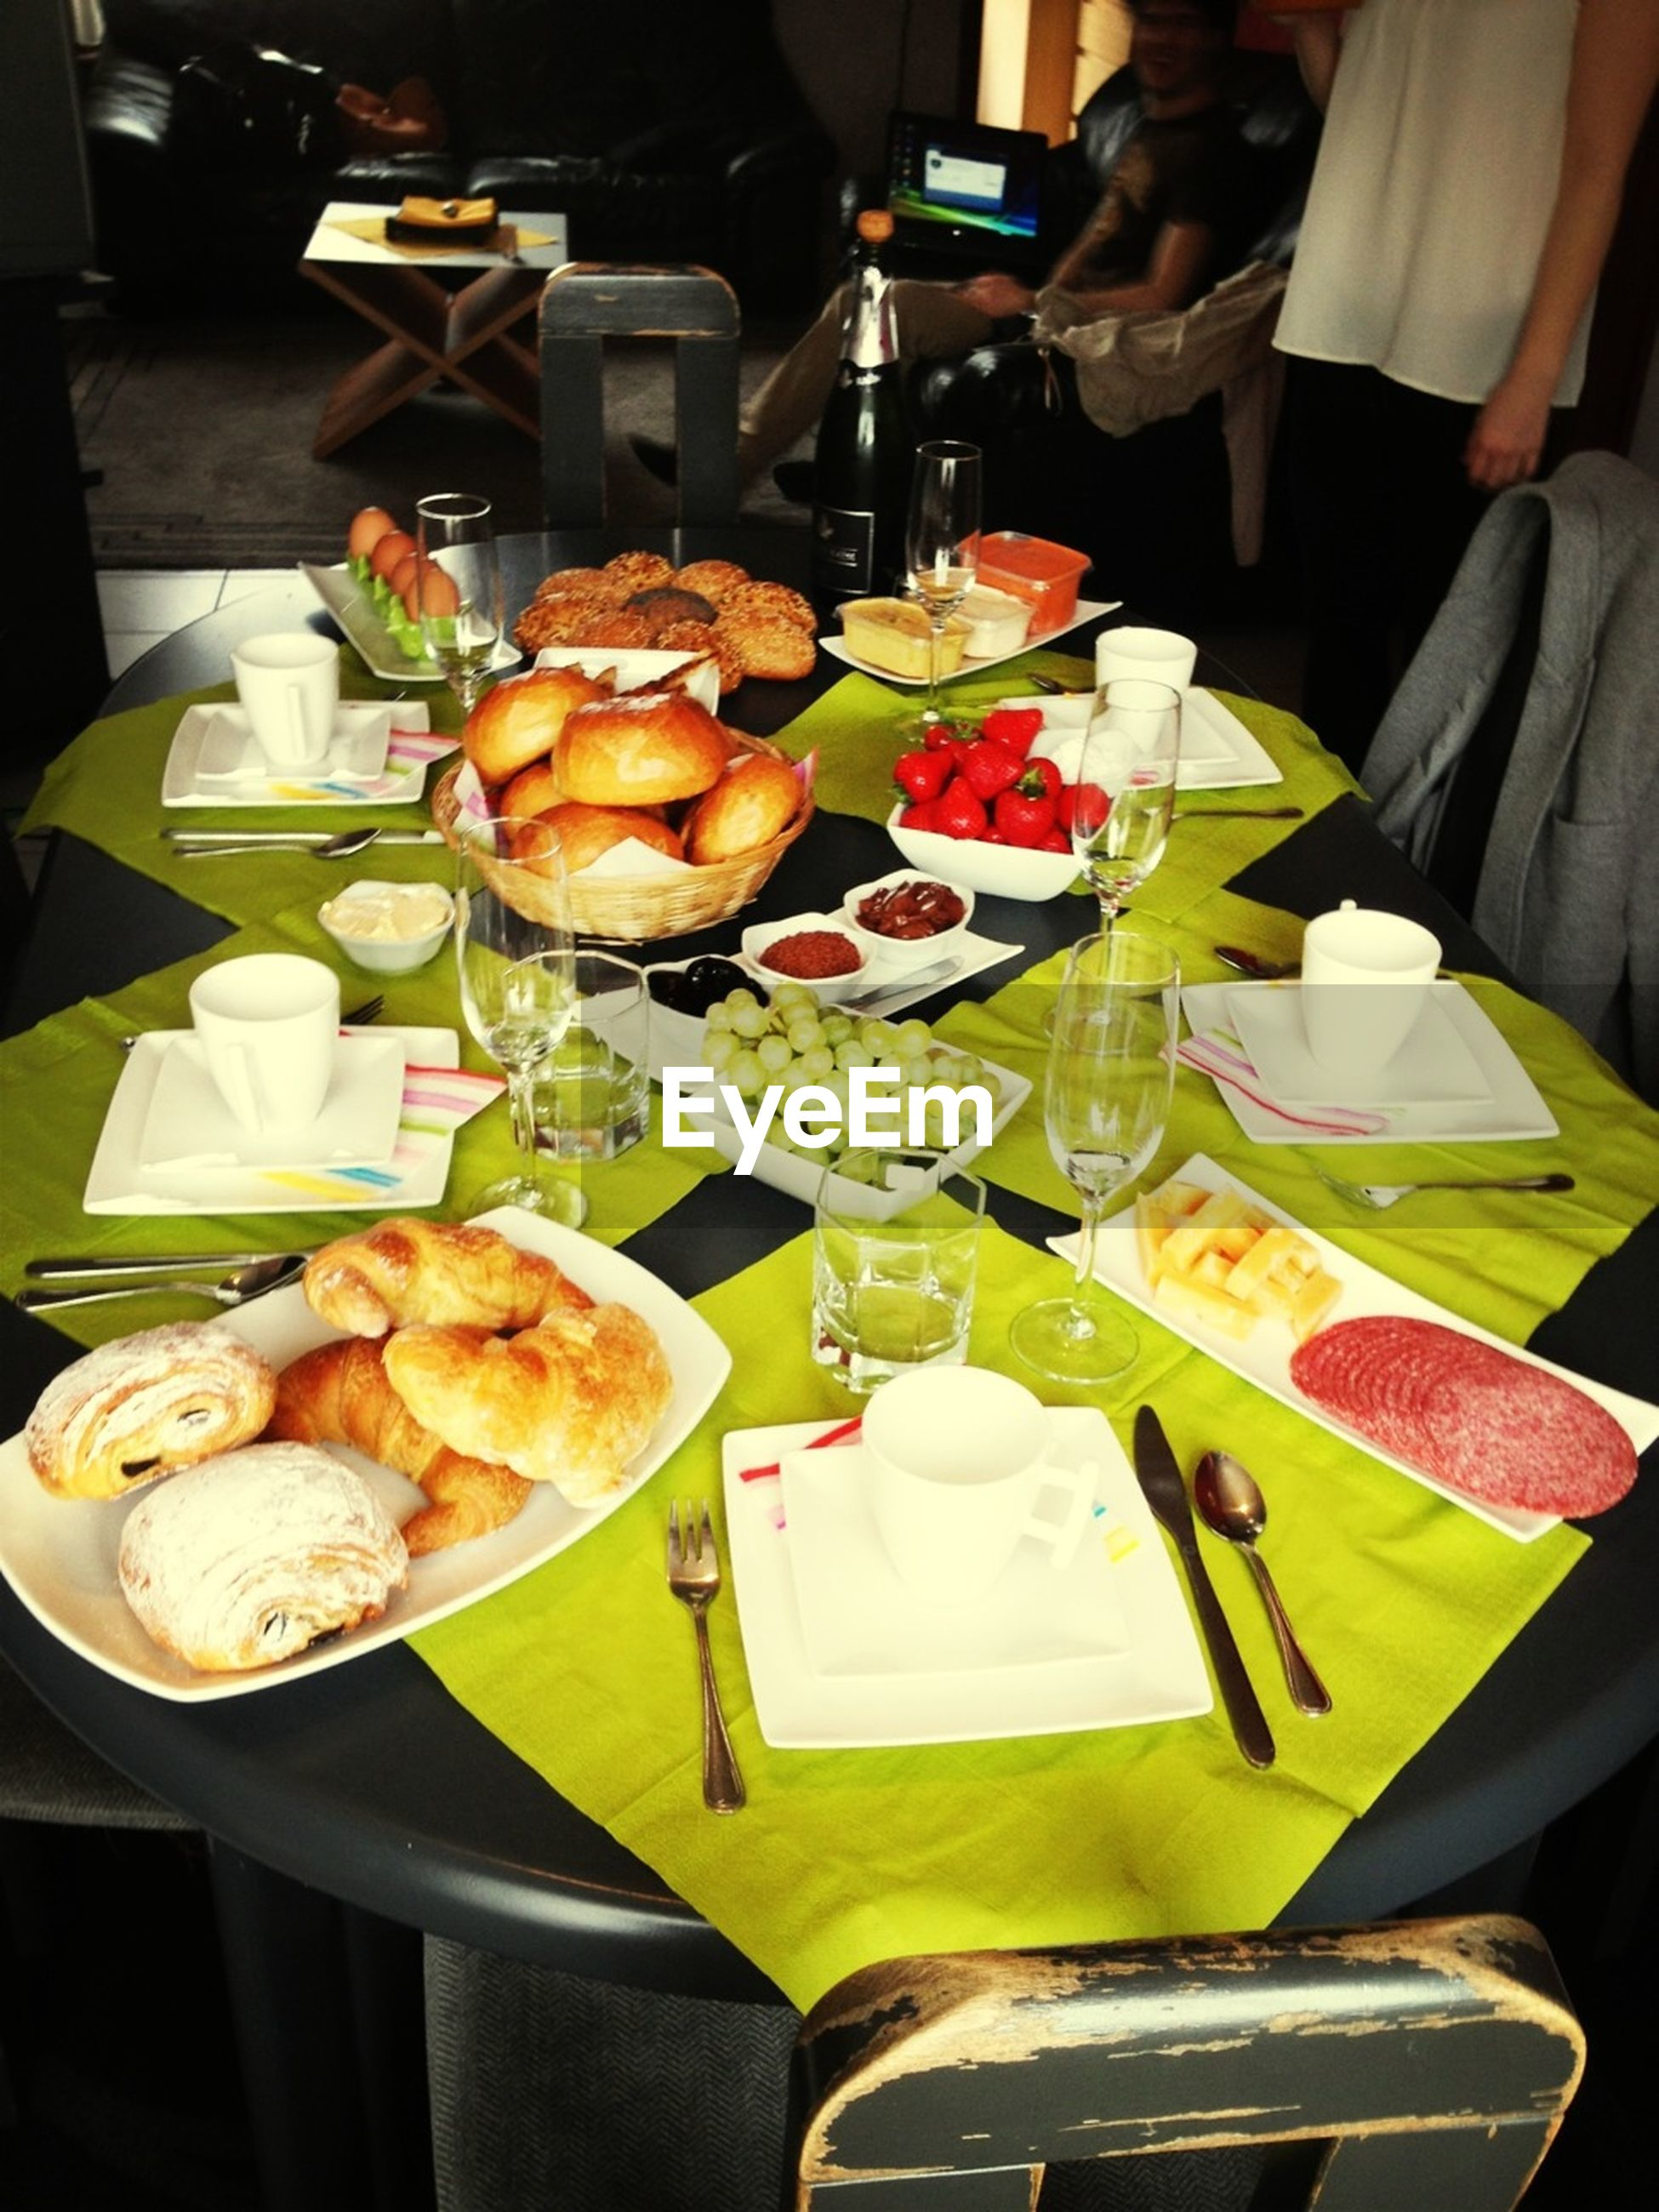 food and drink, indoors, table, food, freshness, plate, restaurant, ready-to-eat, drink, healthy eating, high angle view, still life, meal, variation, dining table, sitting, drinking glass, fork